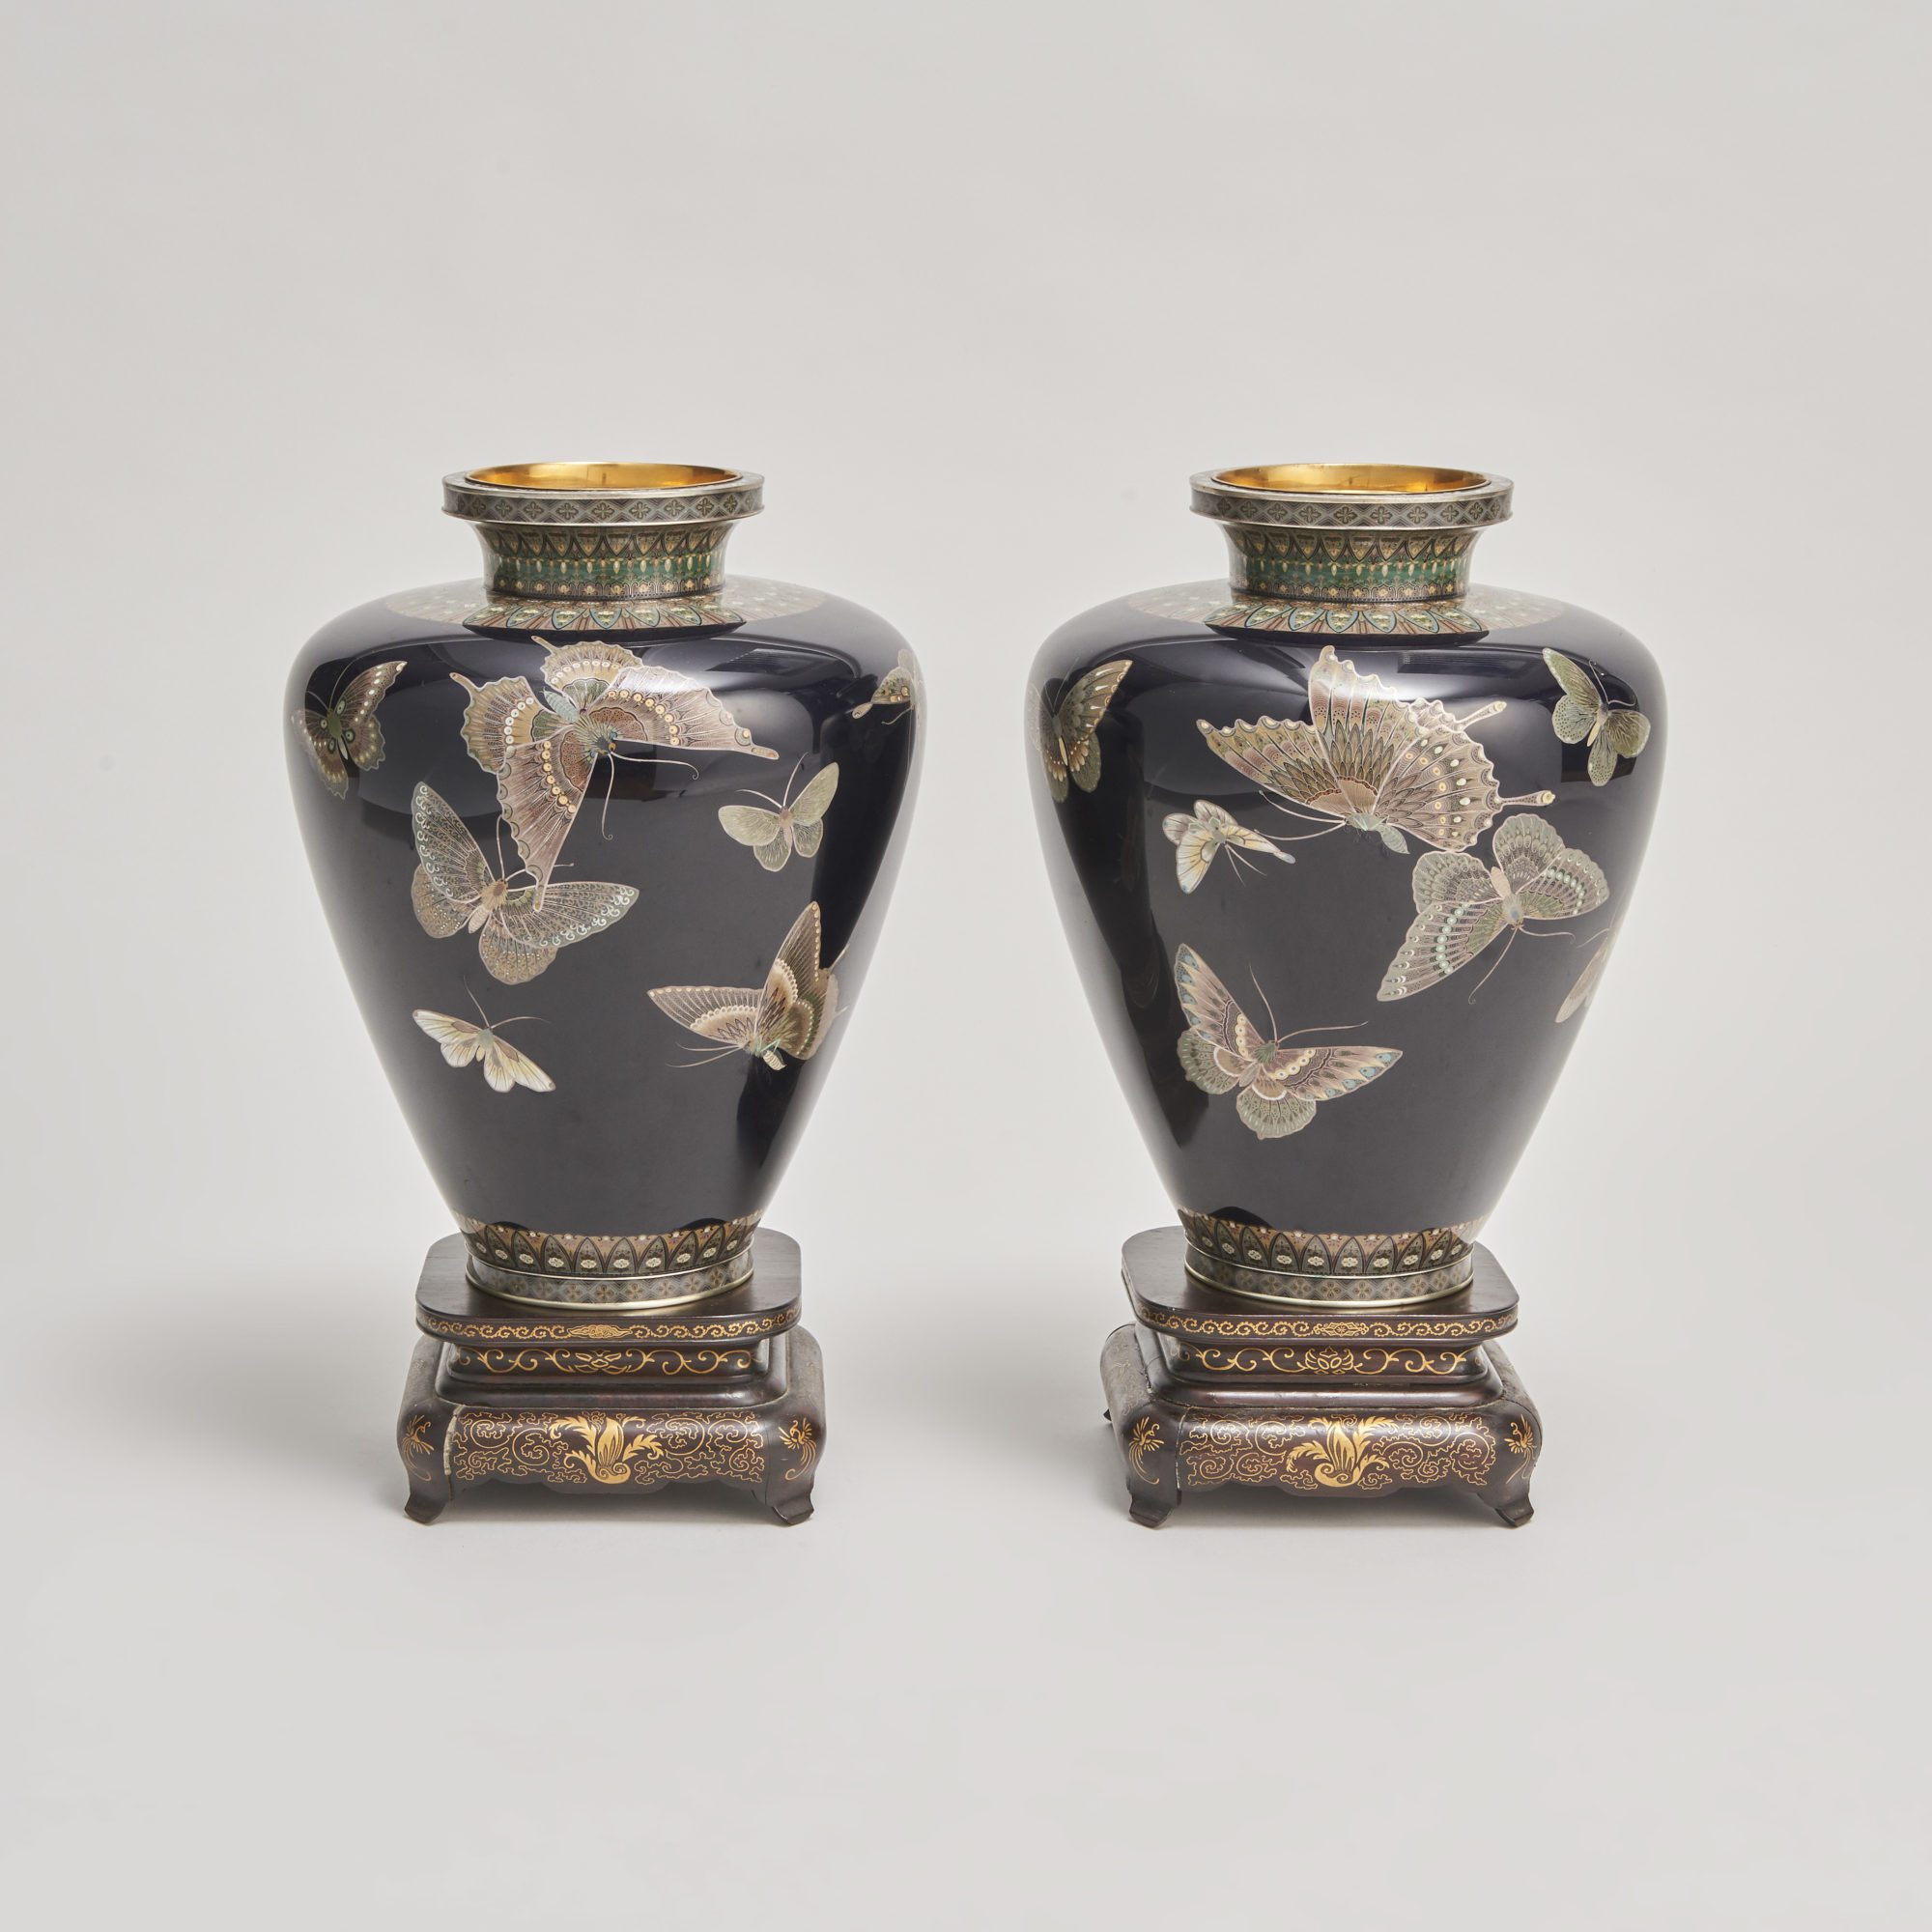 Cloisonne silver wire vases   A stunning pair of Japanese Meiji Period Cloisonné vases with butterfly decoration